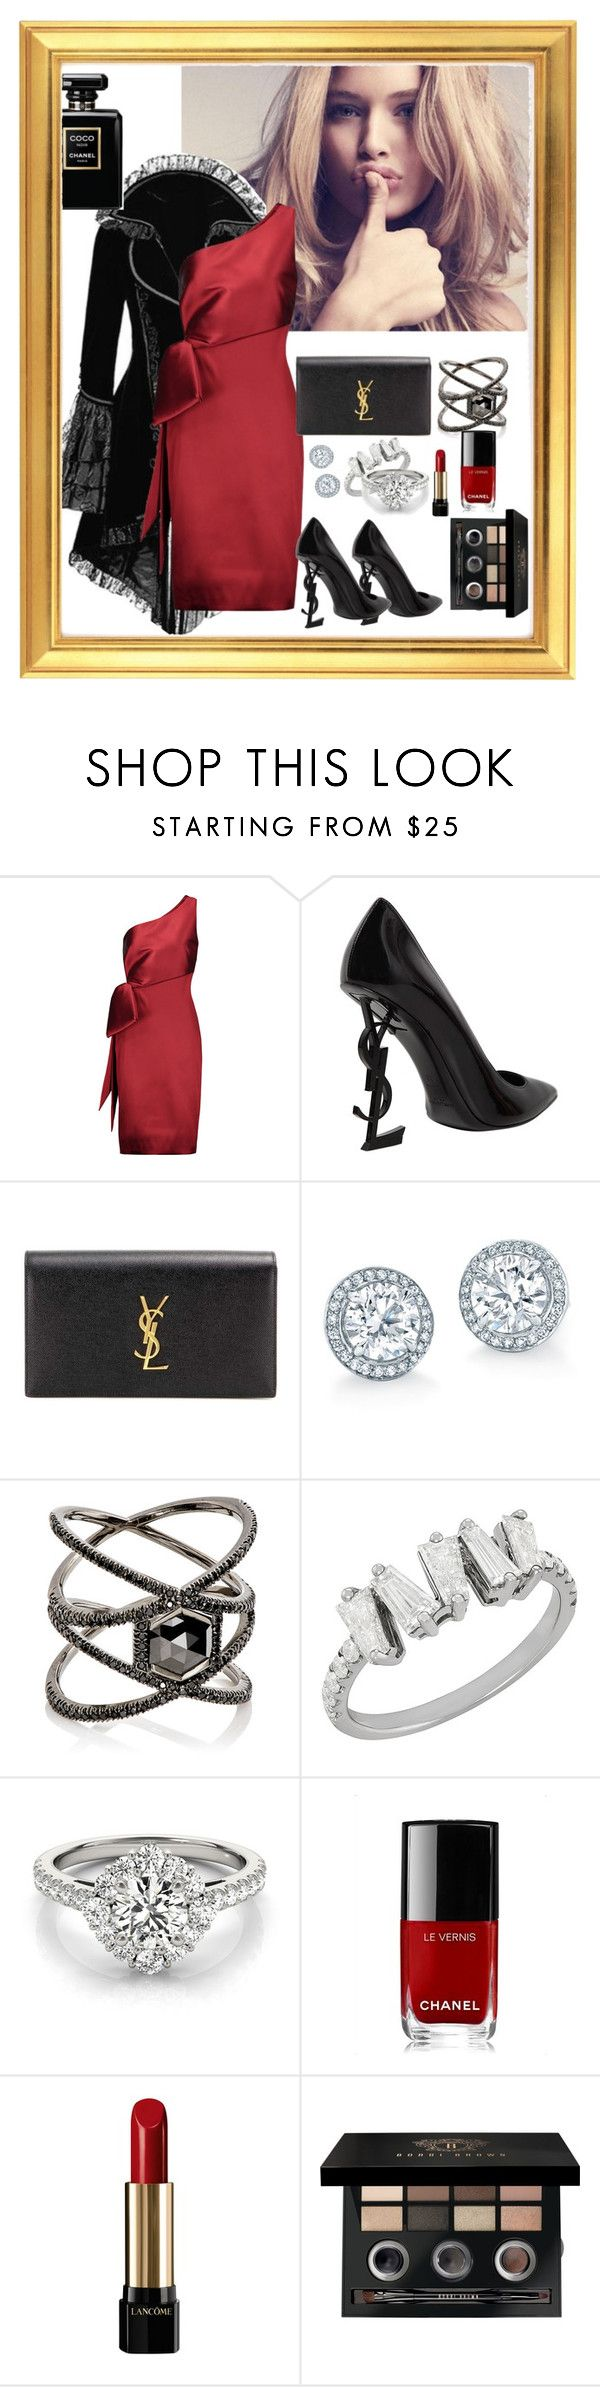 """Celebrate Our 10th Polyversary!"" by piapia74 ❤ liked on Polyvore featuring NOIR Sachin + Babi, Yves Saint Laurent, Eva Fehren, Chanel, Lancôme, Bobbi Brown Cosmetics, polyversary and contestentry"